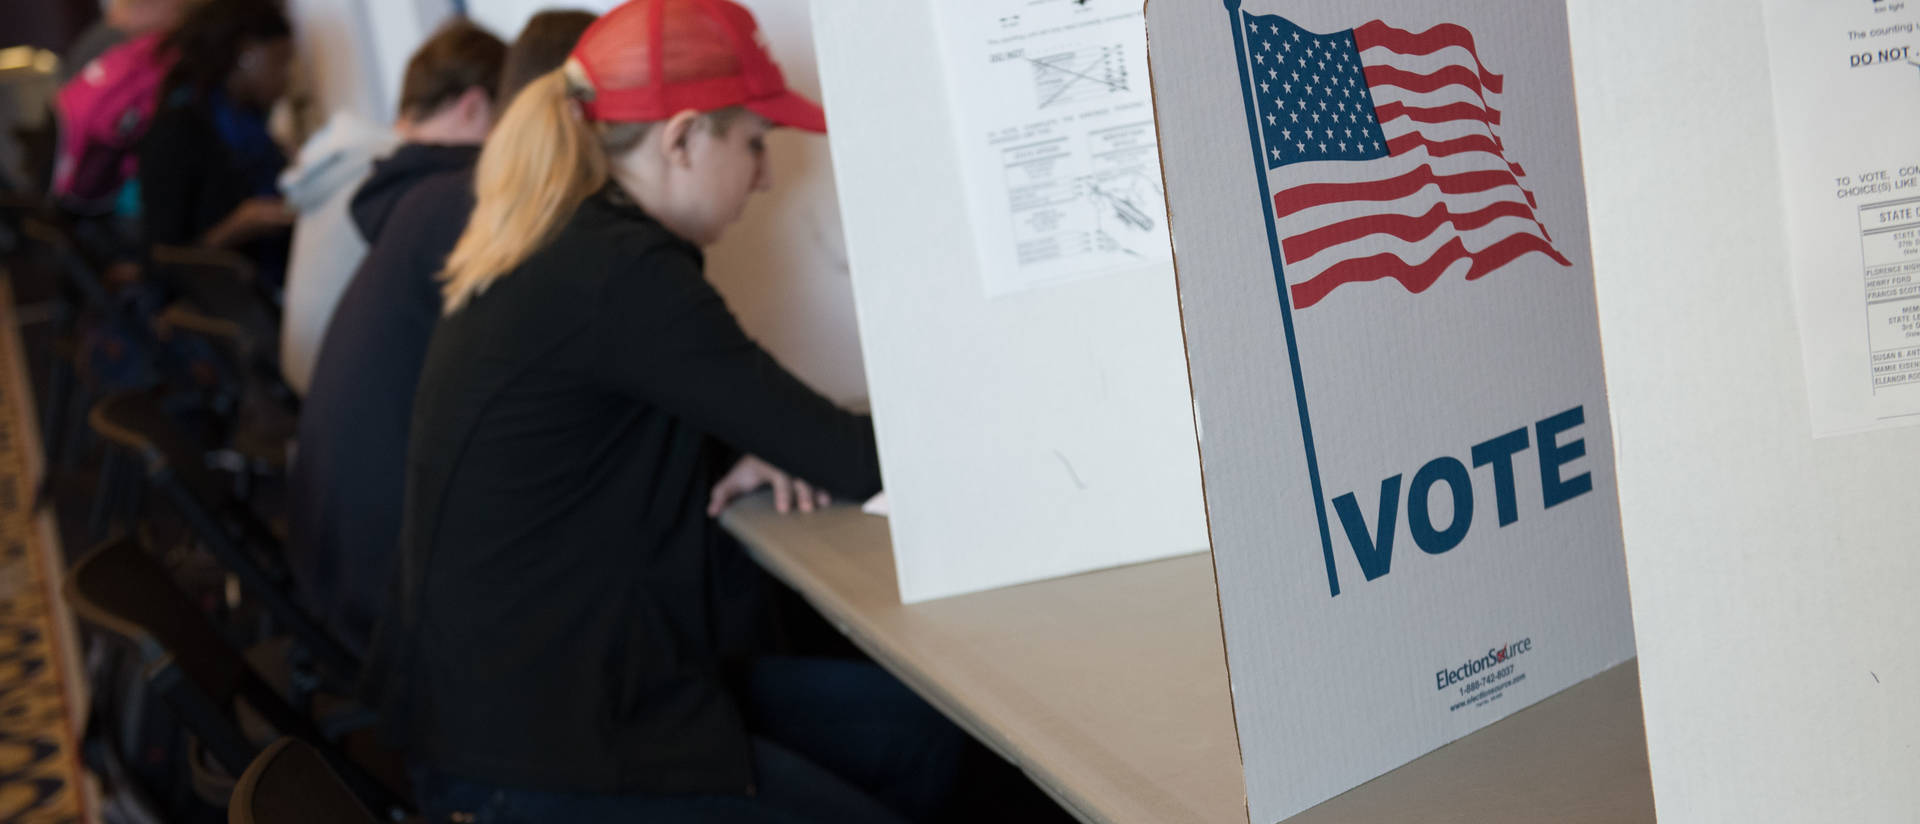 Voting booths for students in Davies Center